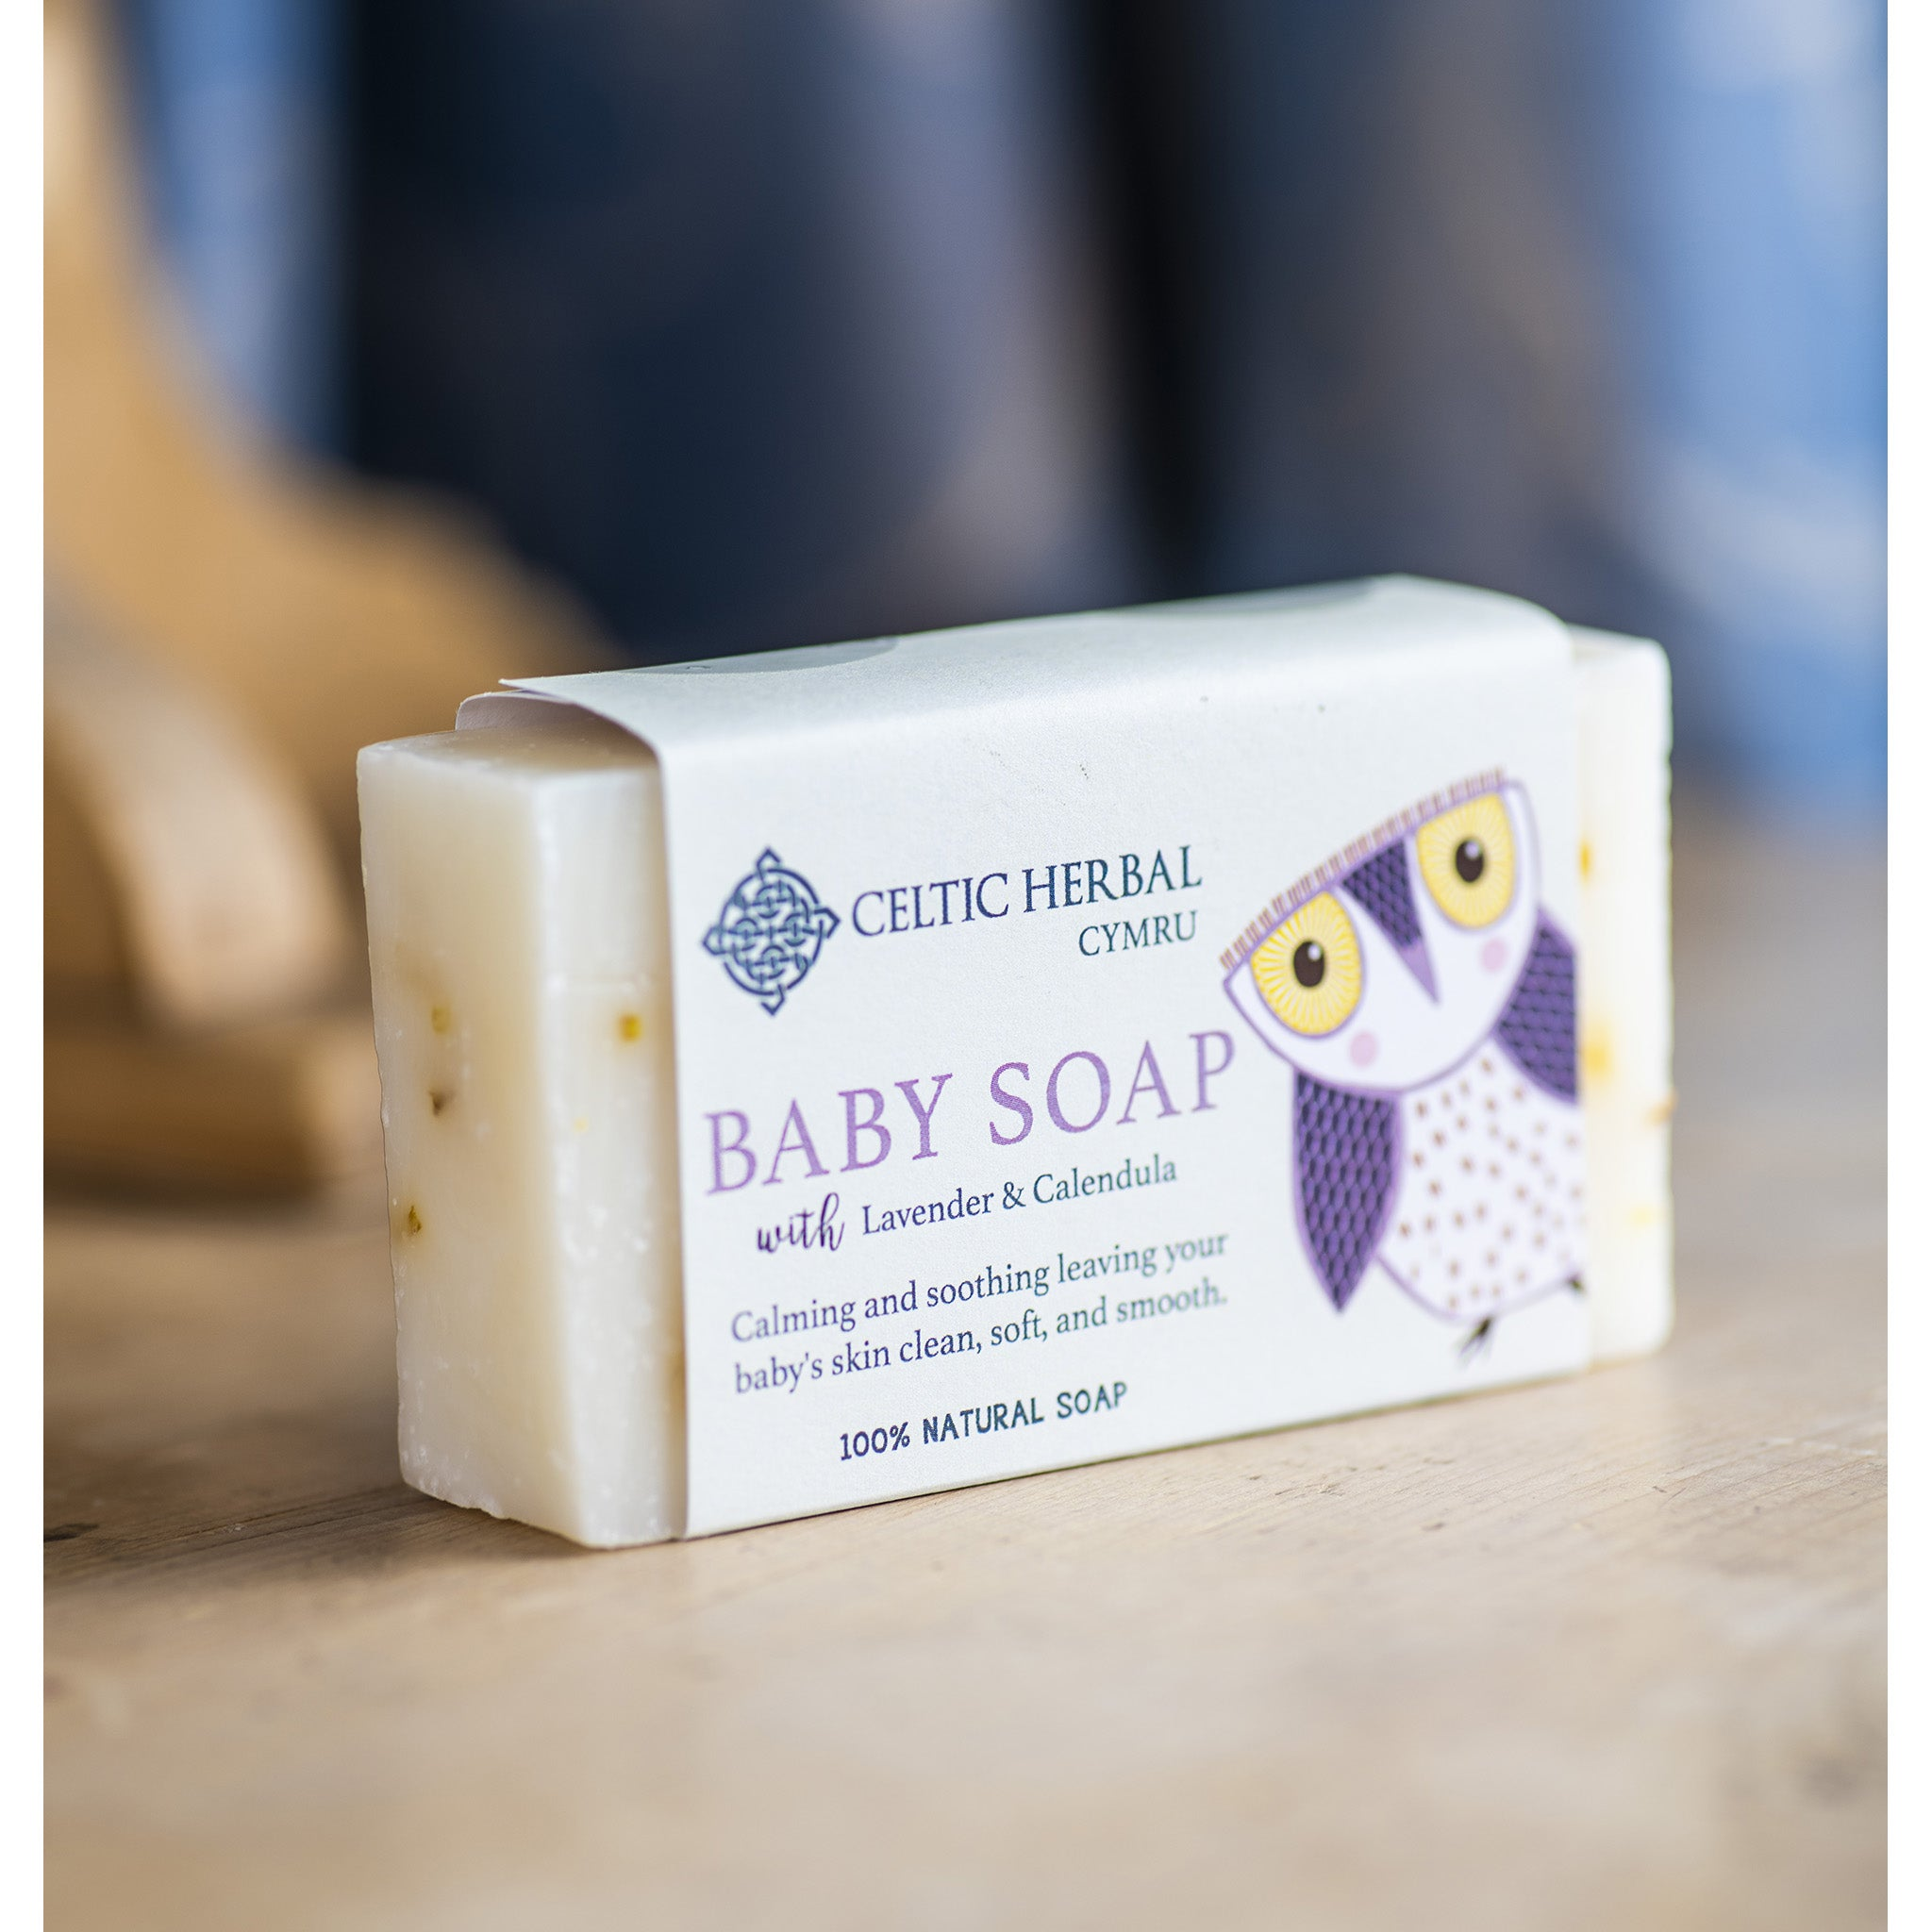 Baby Soap with Lavender and Calendula